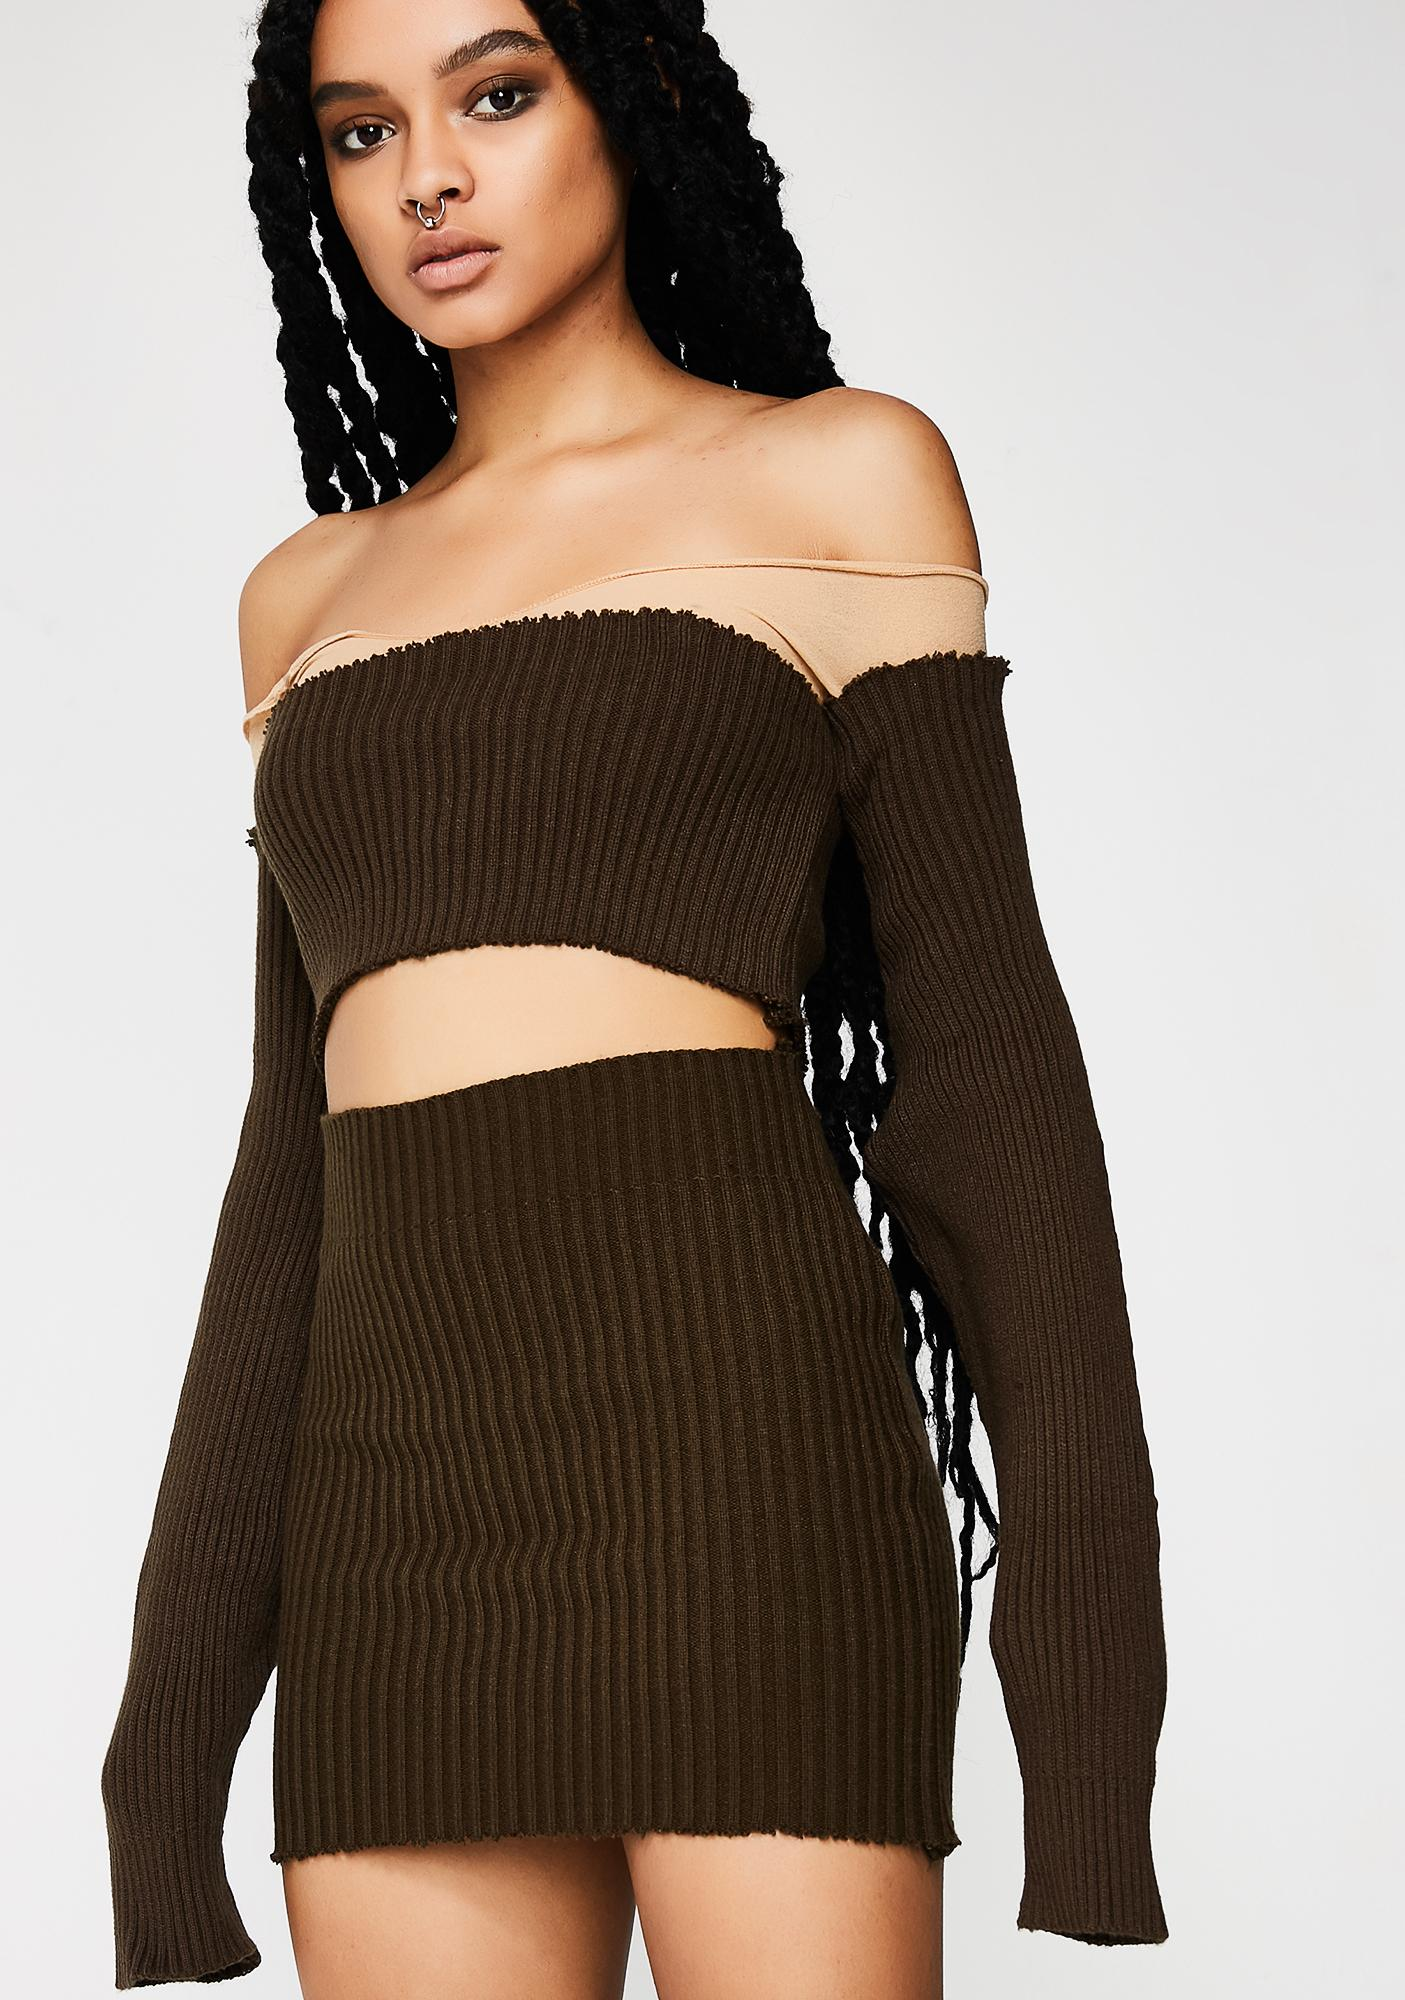 Plugged NYC Knit Skirt